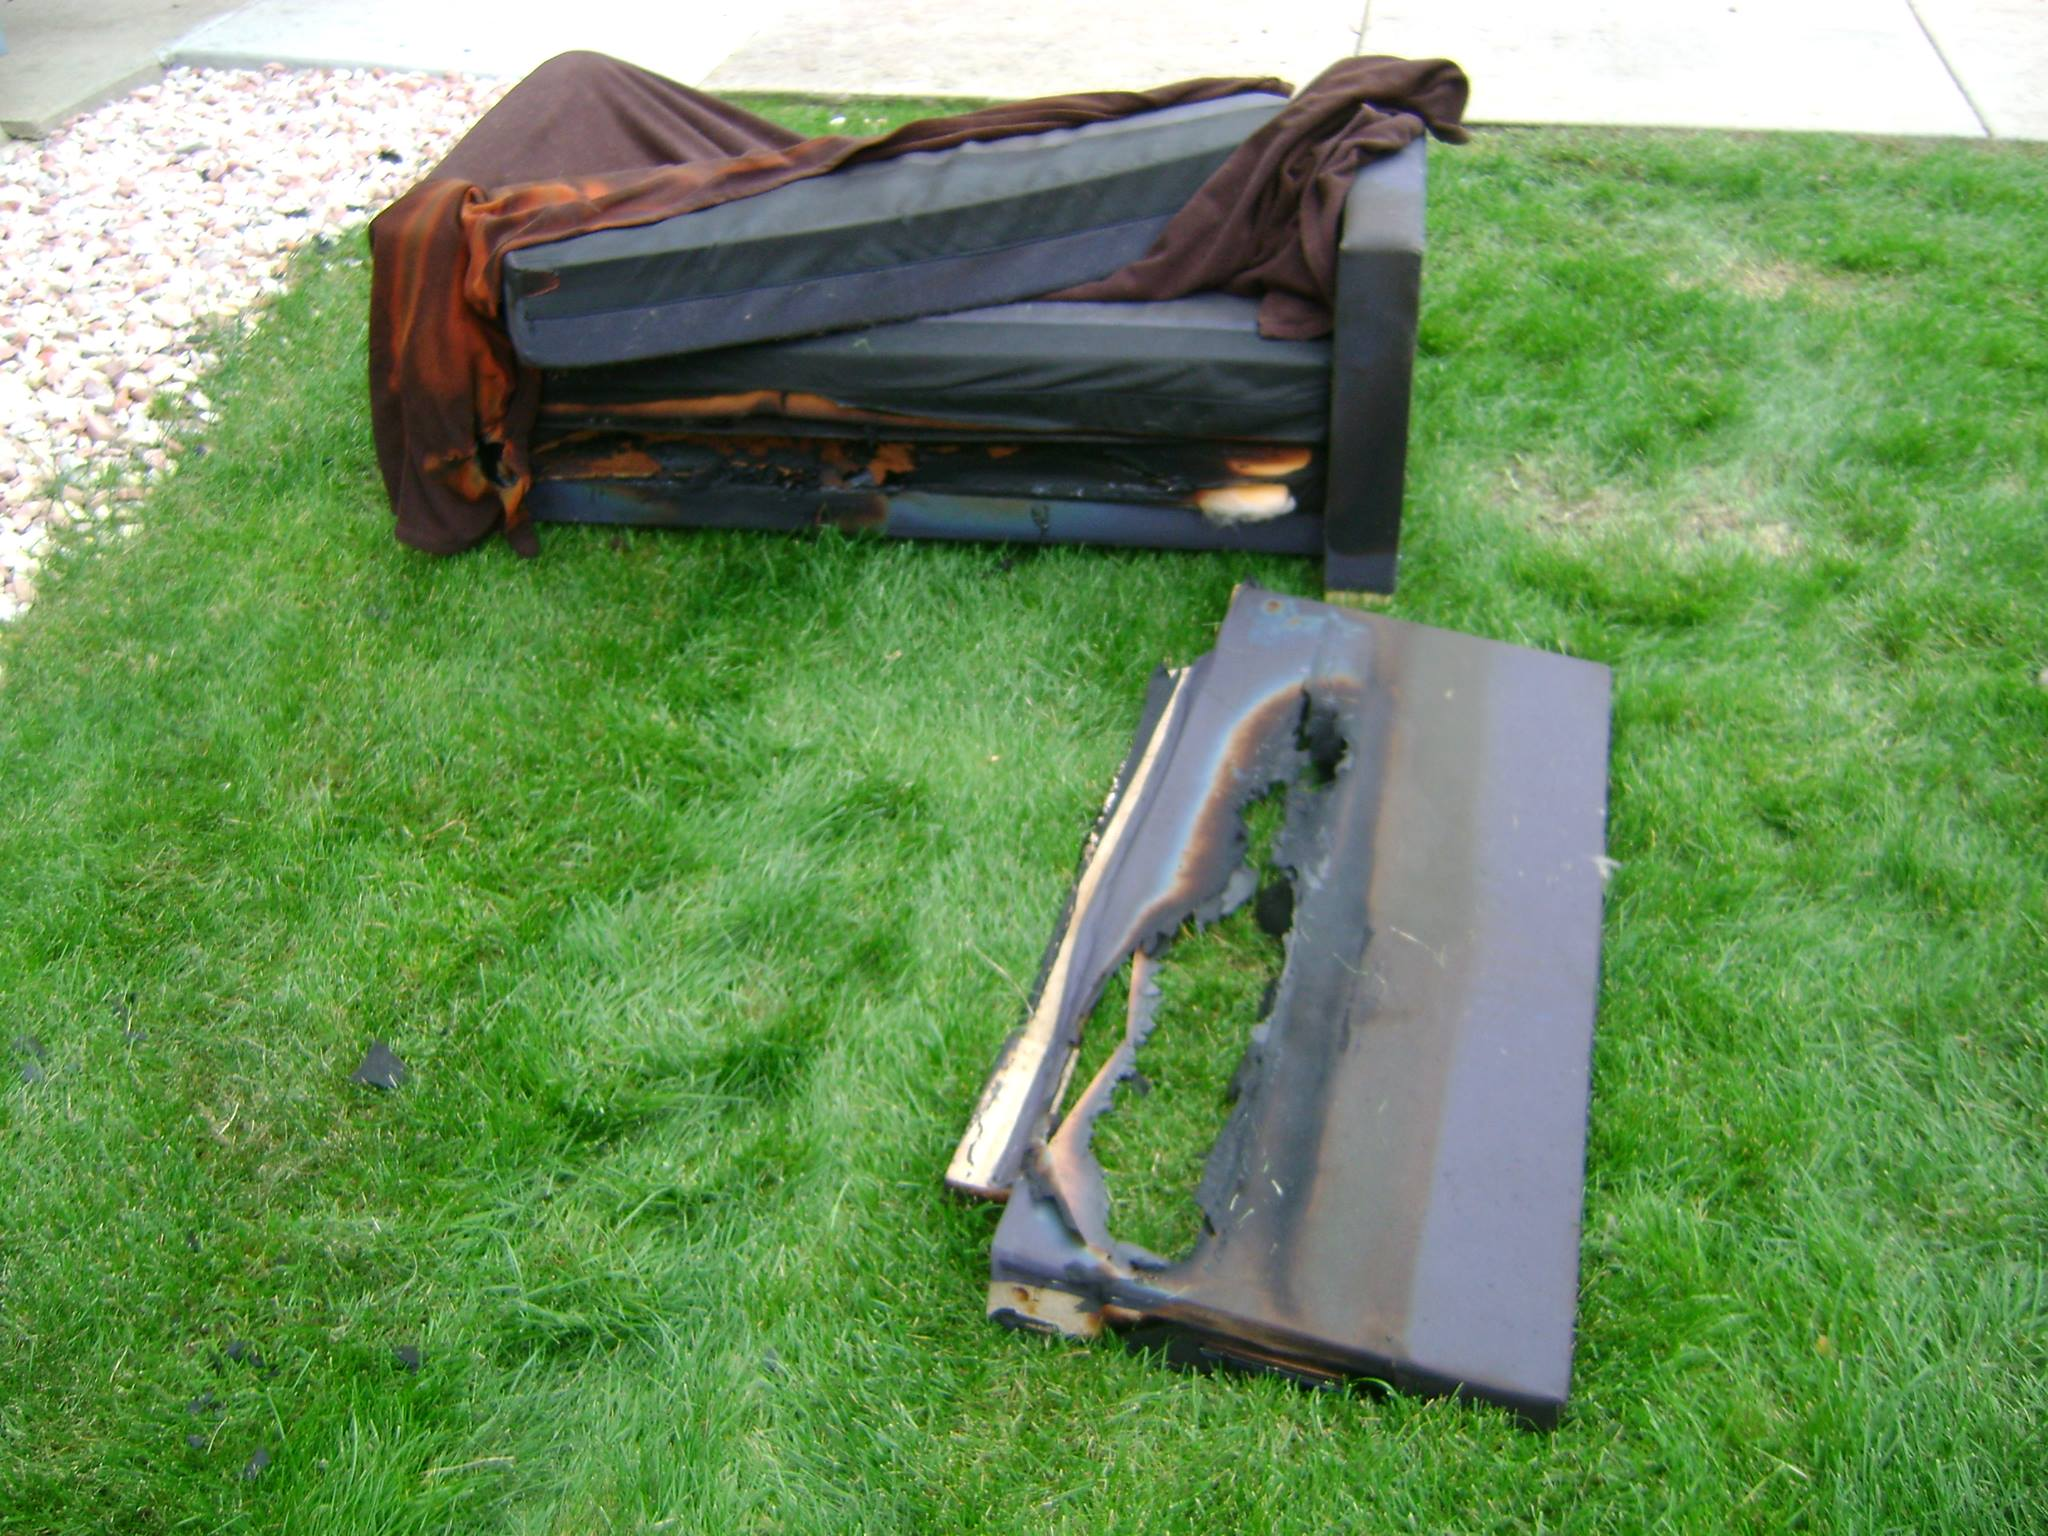 Home Fire Damage In Fort Collins Co Caused By Baseboard Heater